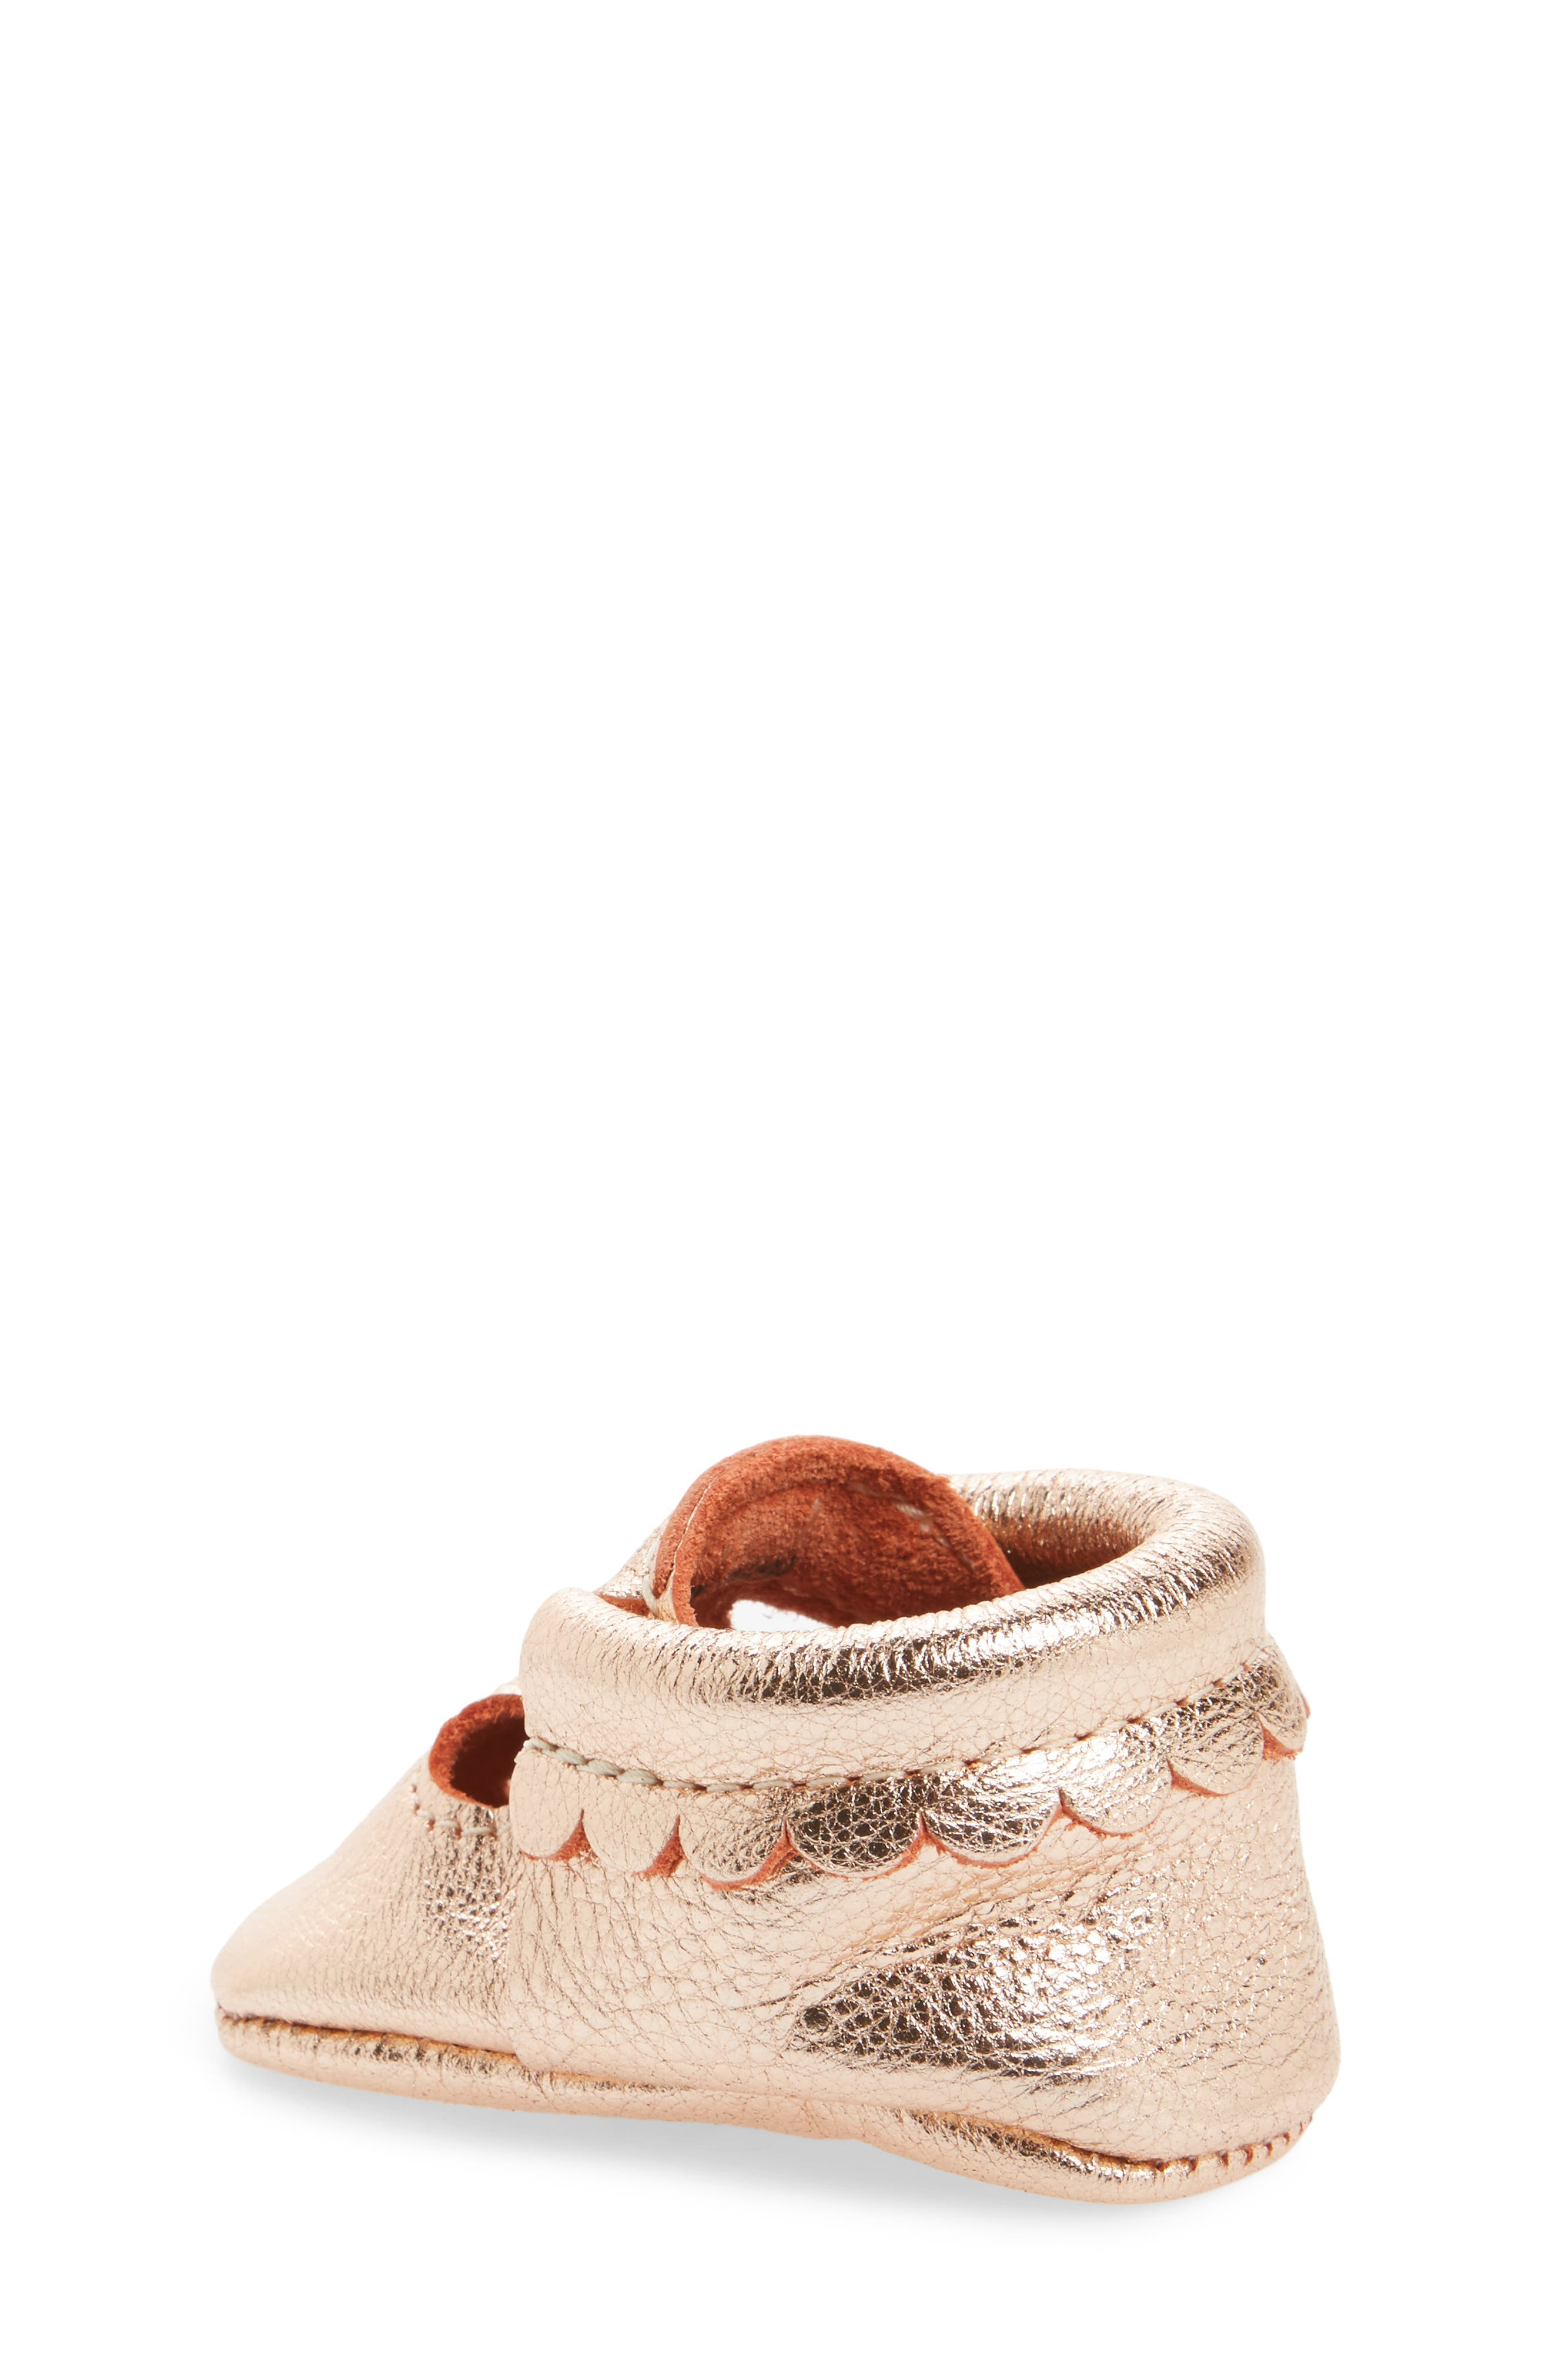 Perforated Mary Jane Moccasin,                             Alternate thumbnail 2, color,                             220